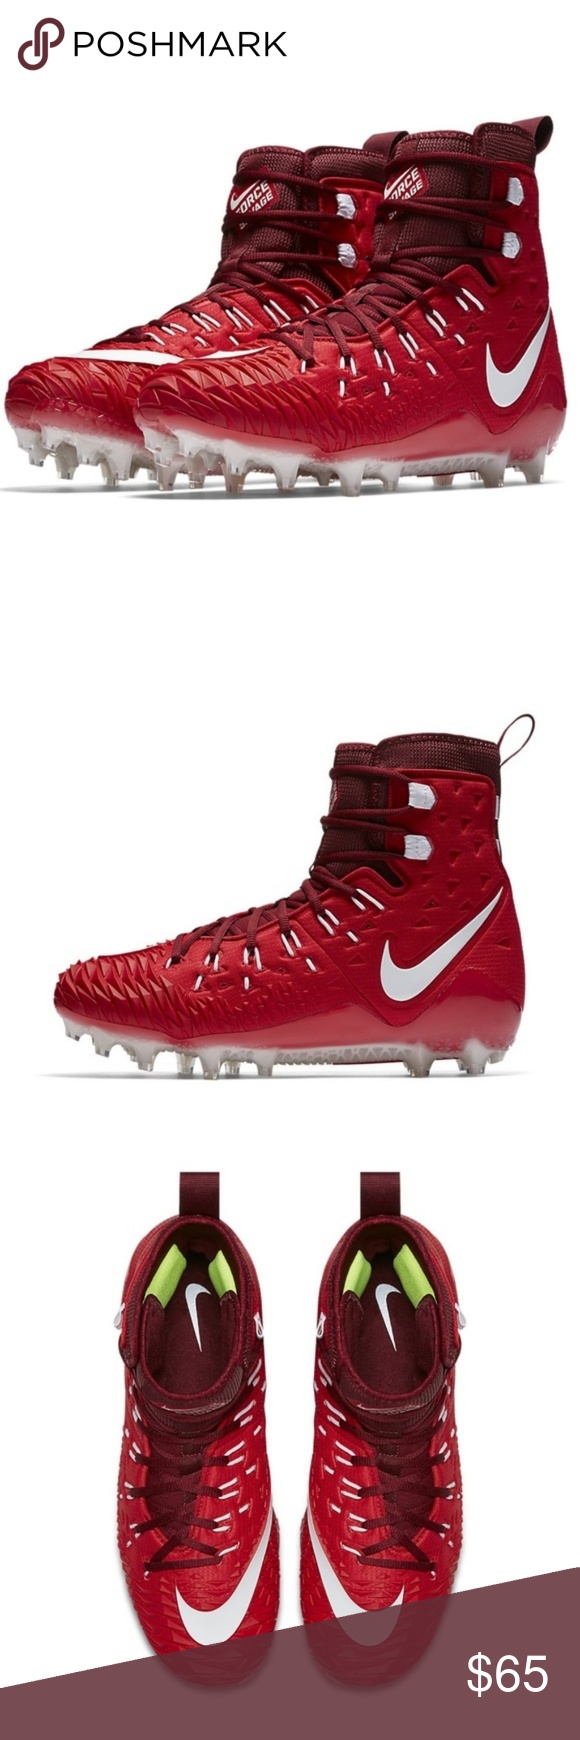 d0111a794b3b NEW Nike Force Savage Elite TD Football Cleats Designed specifically for  linemen, the Nike Force